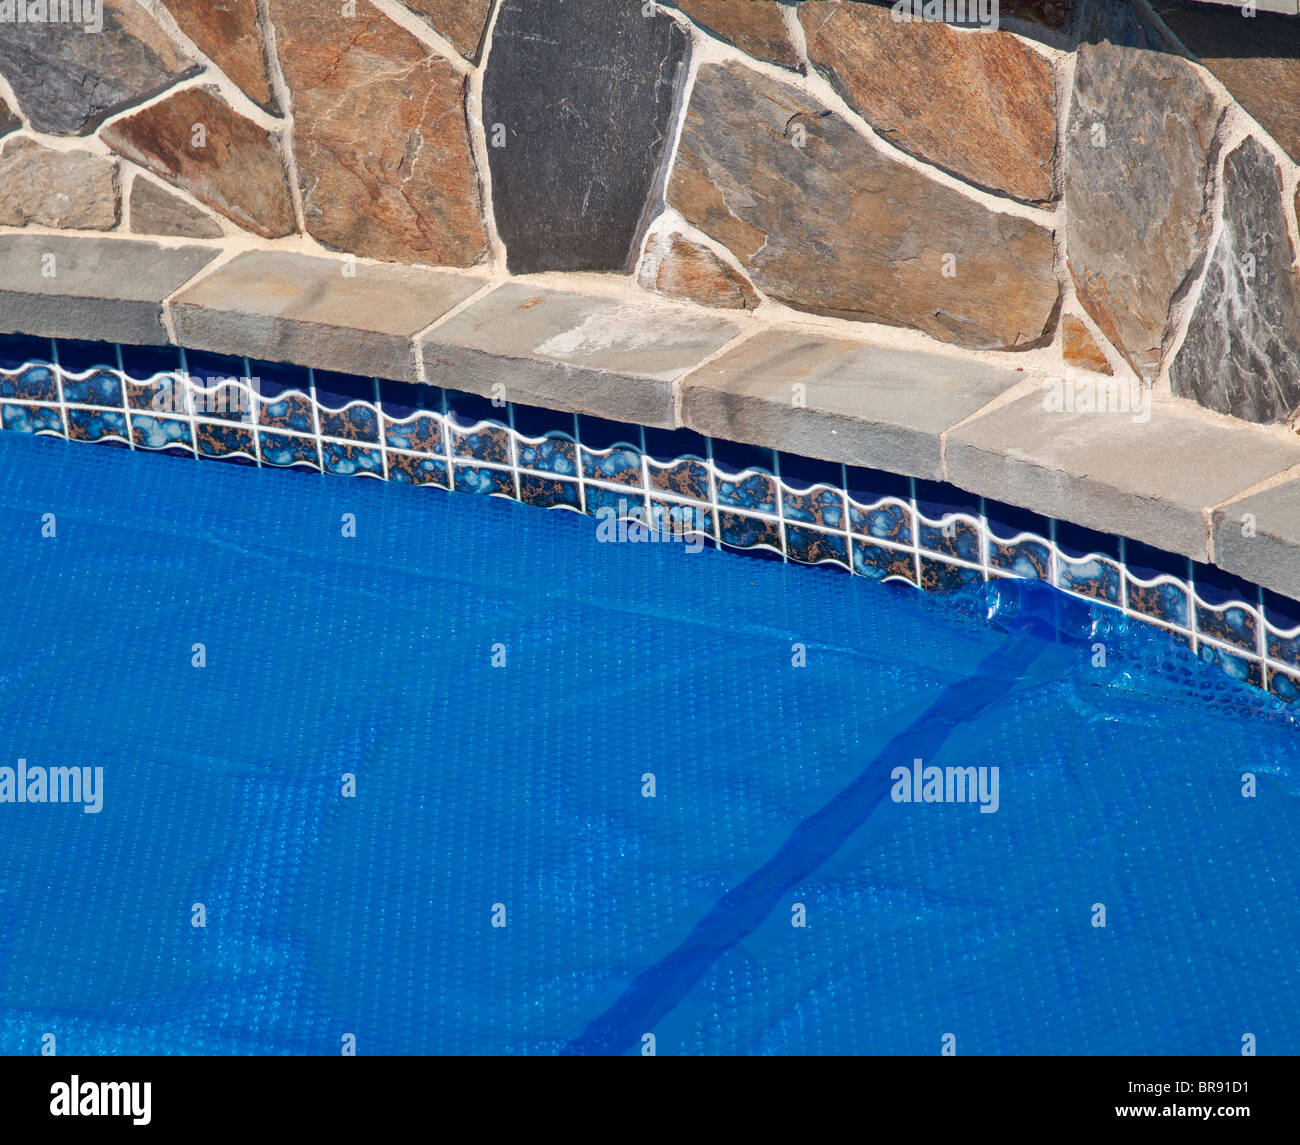 Domestic swimming pool with blue solar bubble wrap cover to keep in ...